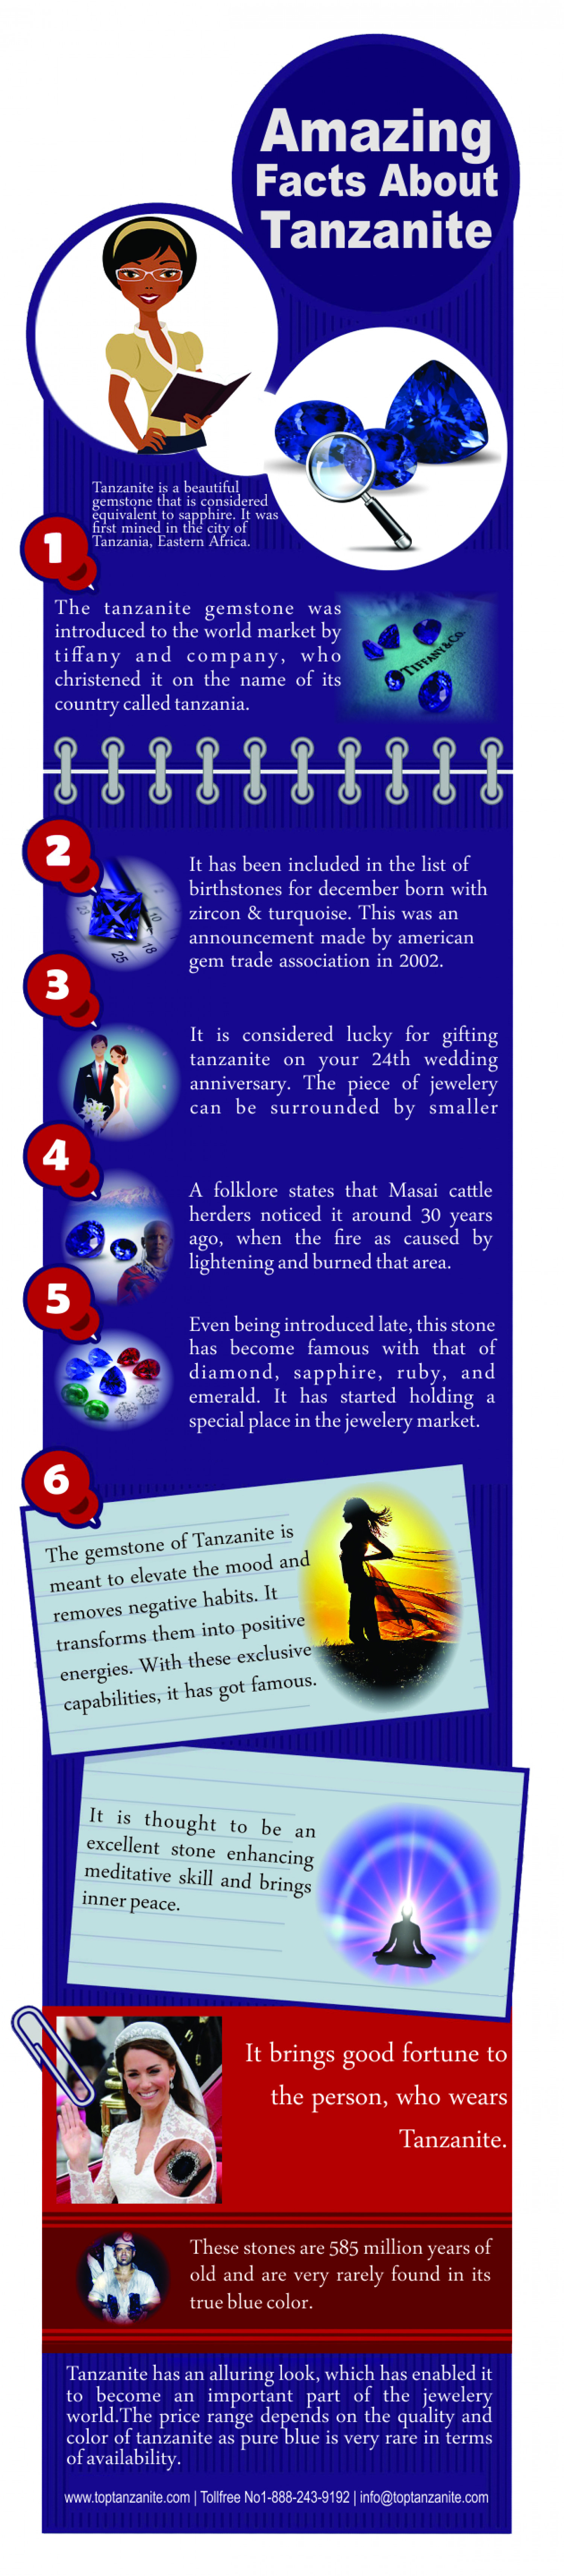 Amazing Facts About Tanzanite Infographic